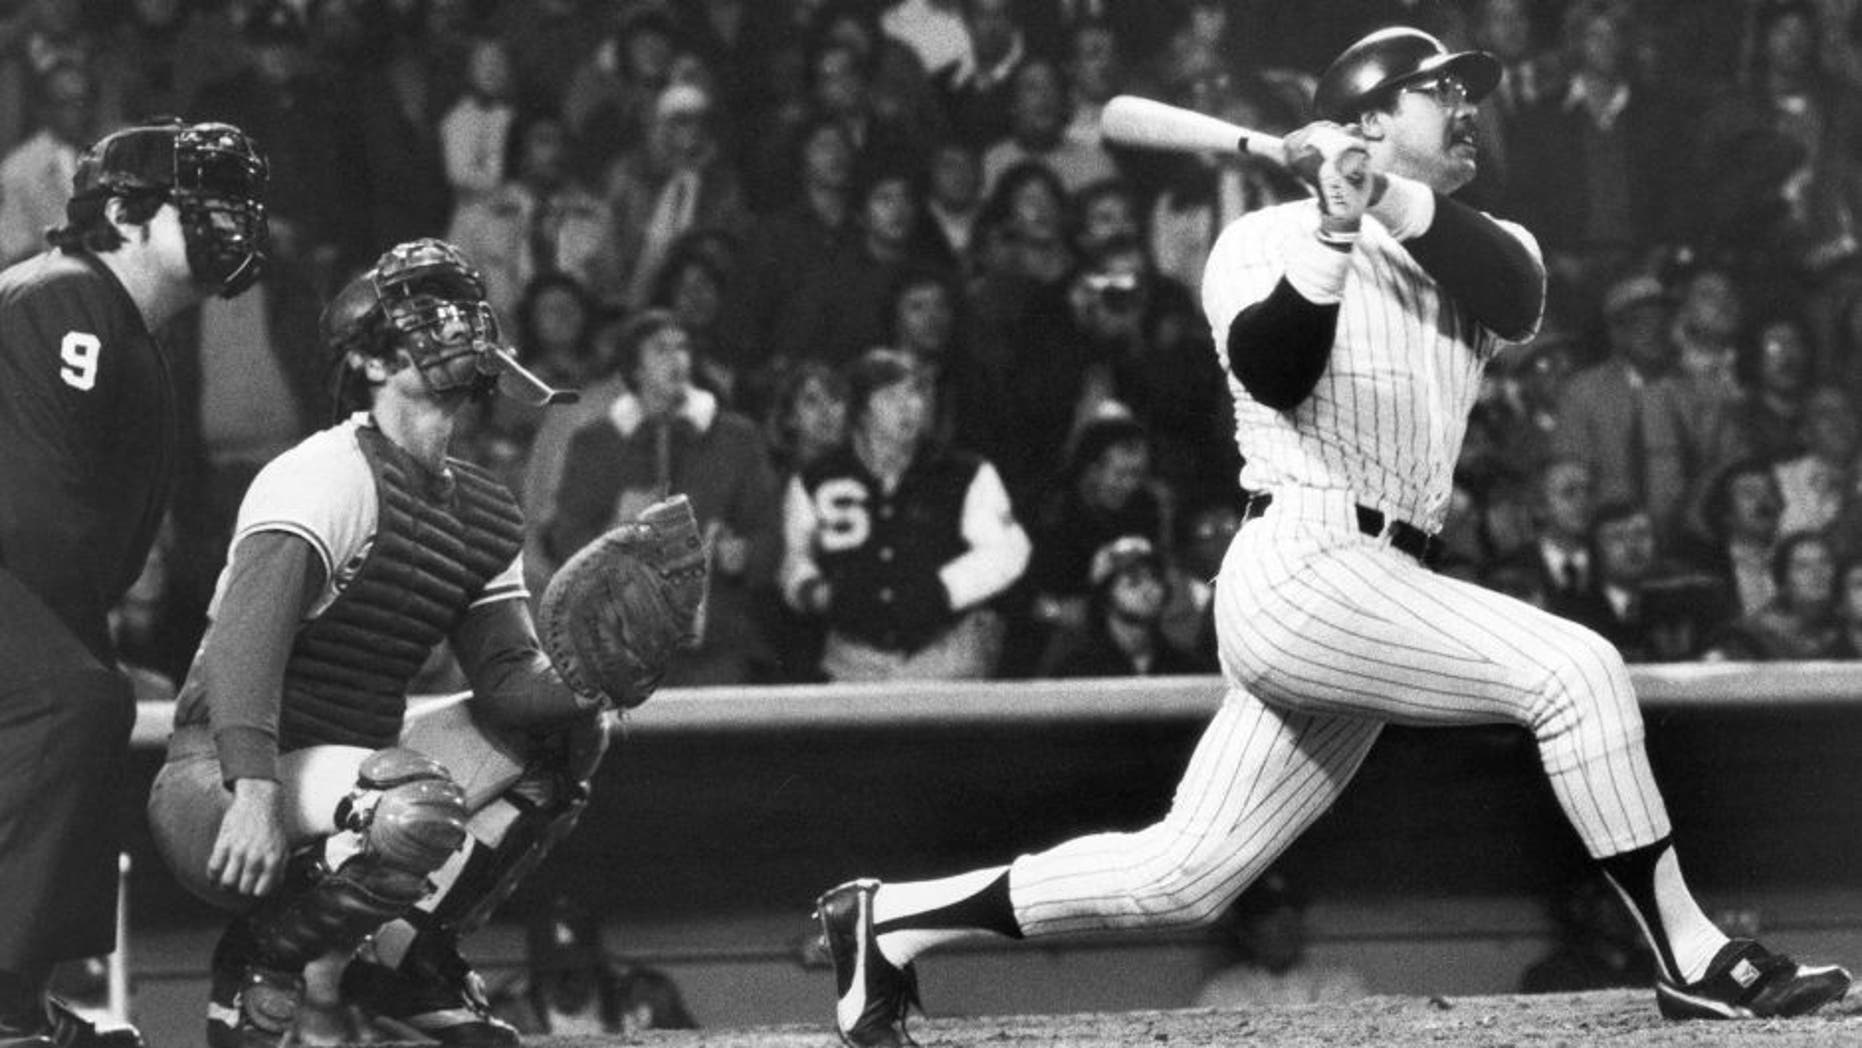 BRONX, NY - OCTOBER 18: Reggie Jackson of the New York Yankees hits his third consecutive home run of the game against the Los Angeles Dodgers in the eight inning of Game six of the 1977 World Series at Yankee Stadium on October 18, 1977 in the Bronx, New York. The Yankees defeated the Dodgers 8-4 and won the World Series four games to two. (Photo by Louis Requena/MLB Photos via Getty Images)